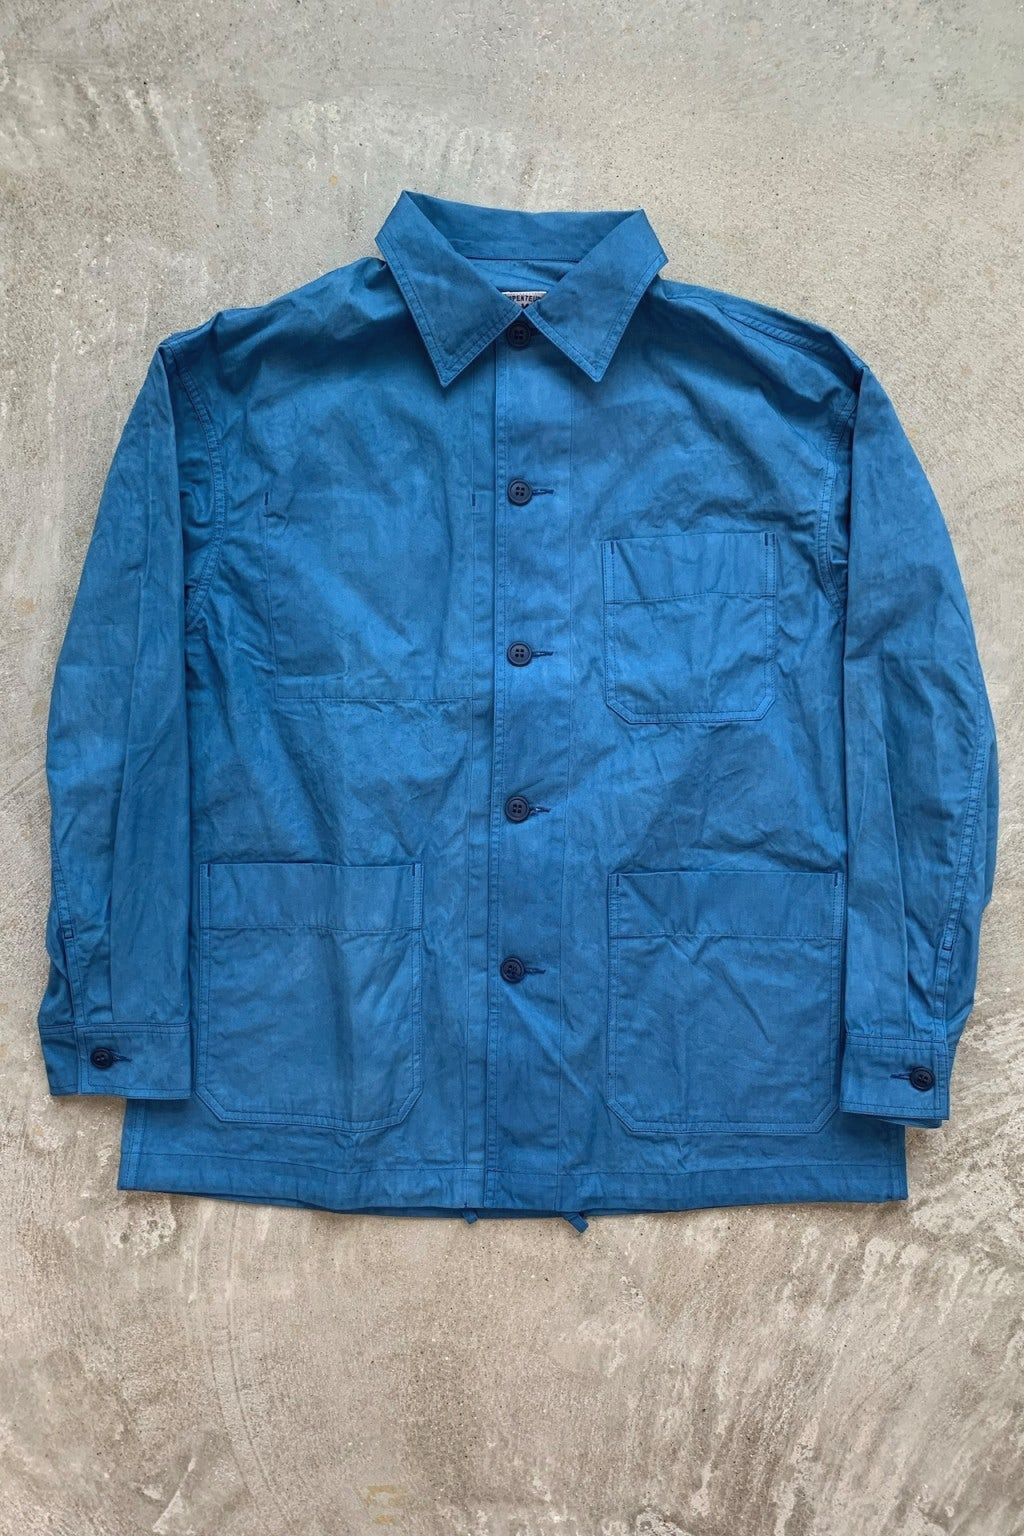 Arpenteur ADN Jacket  WOAD Blue Cotton Gabardine